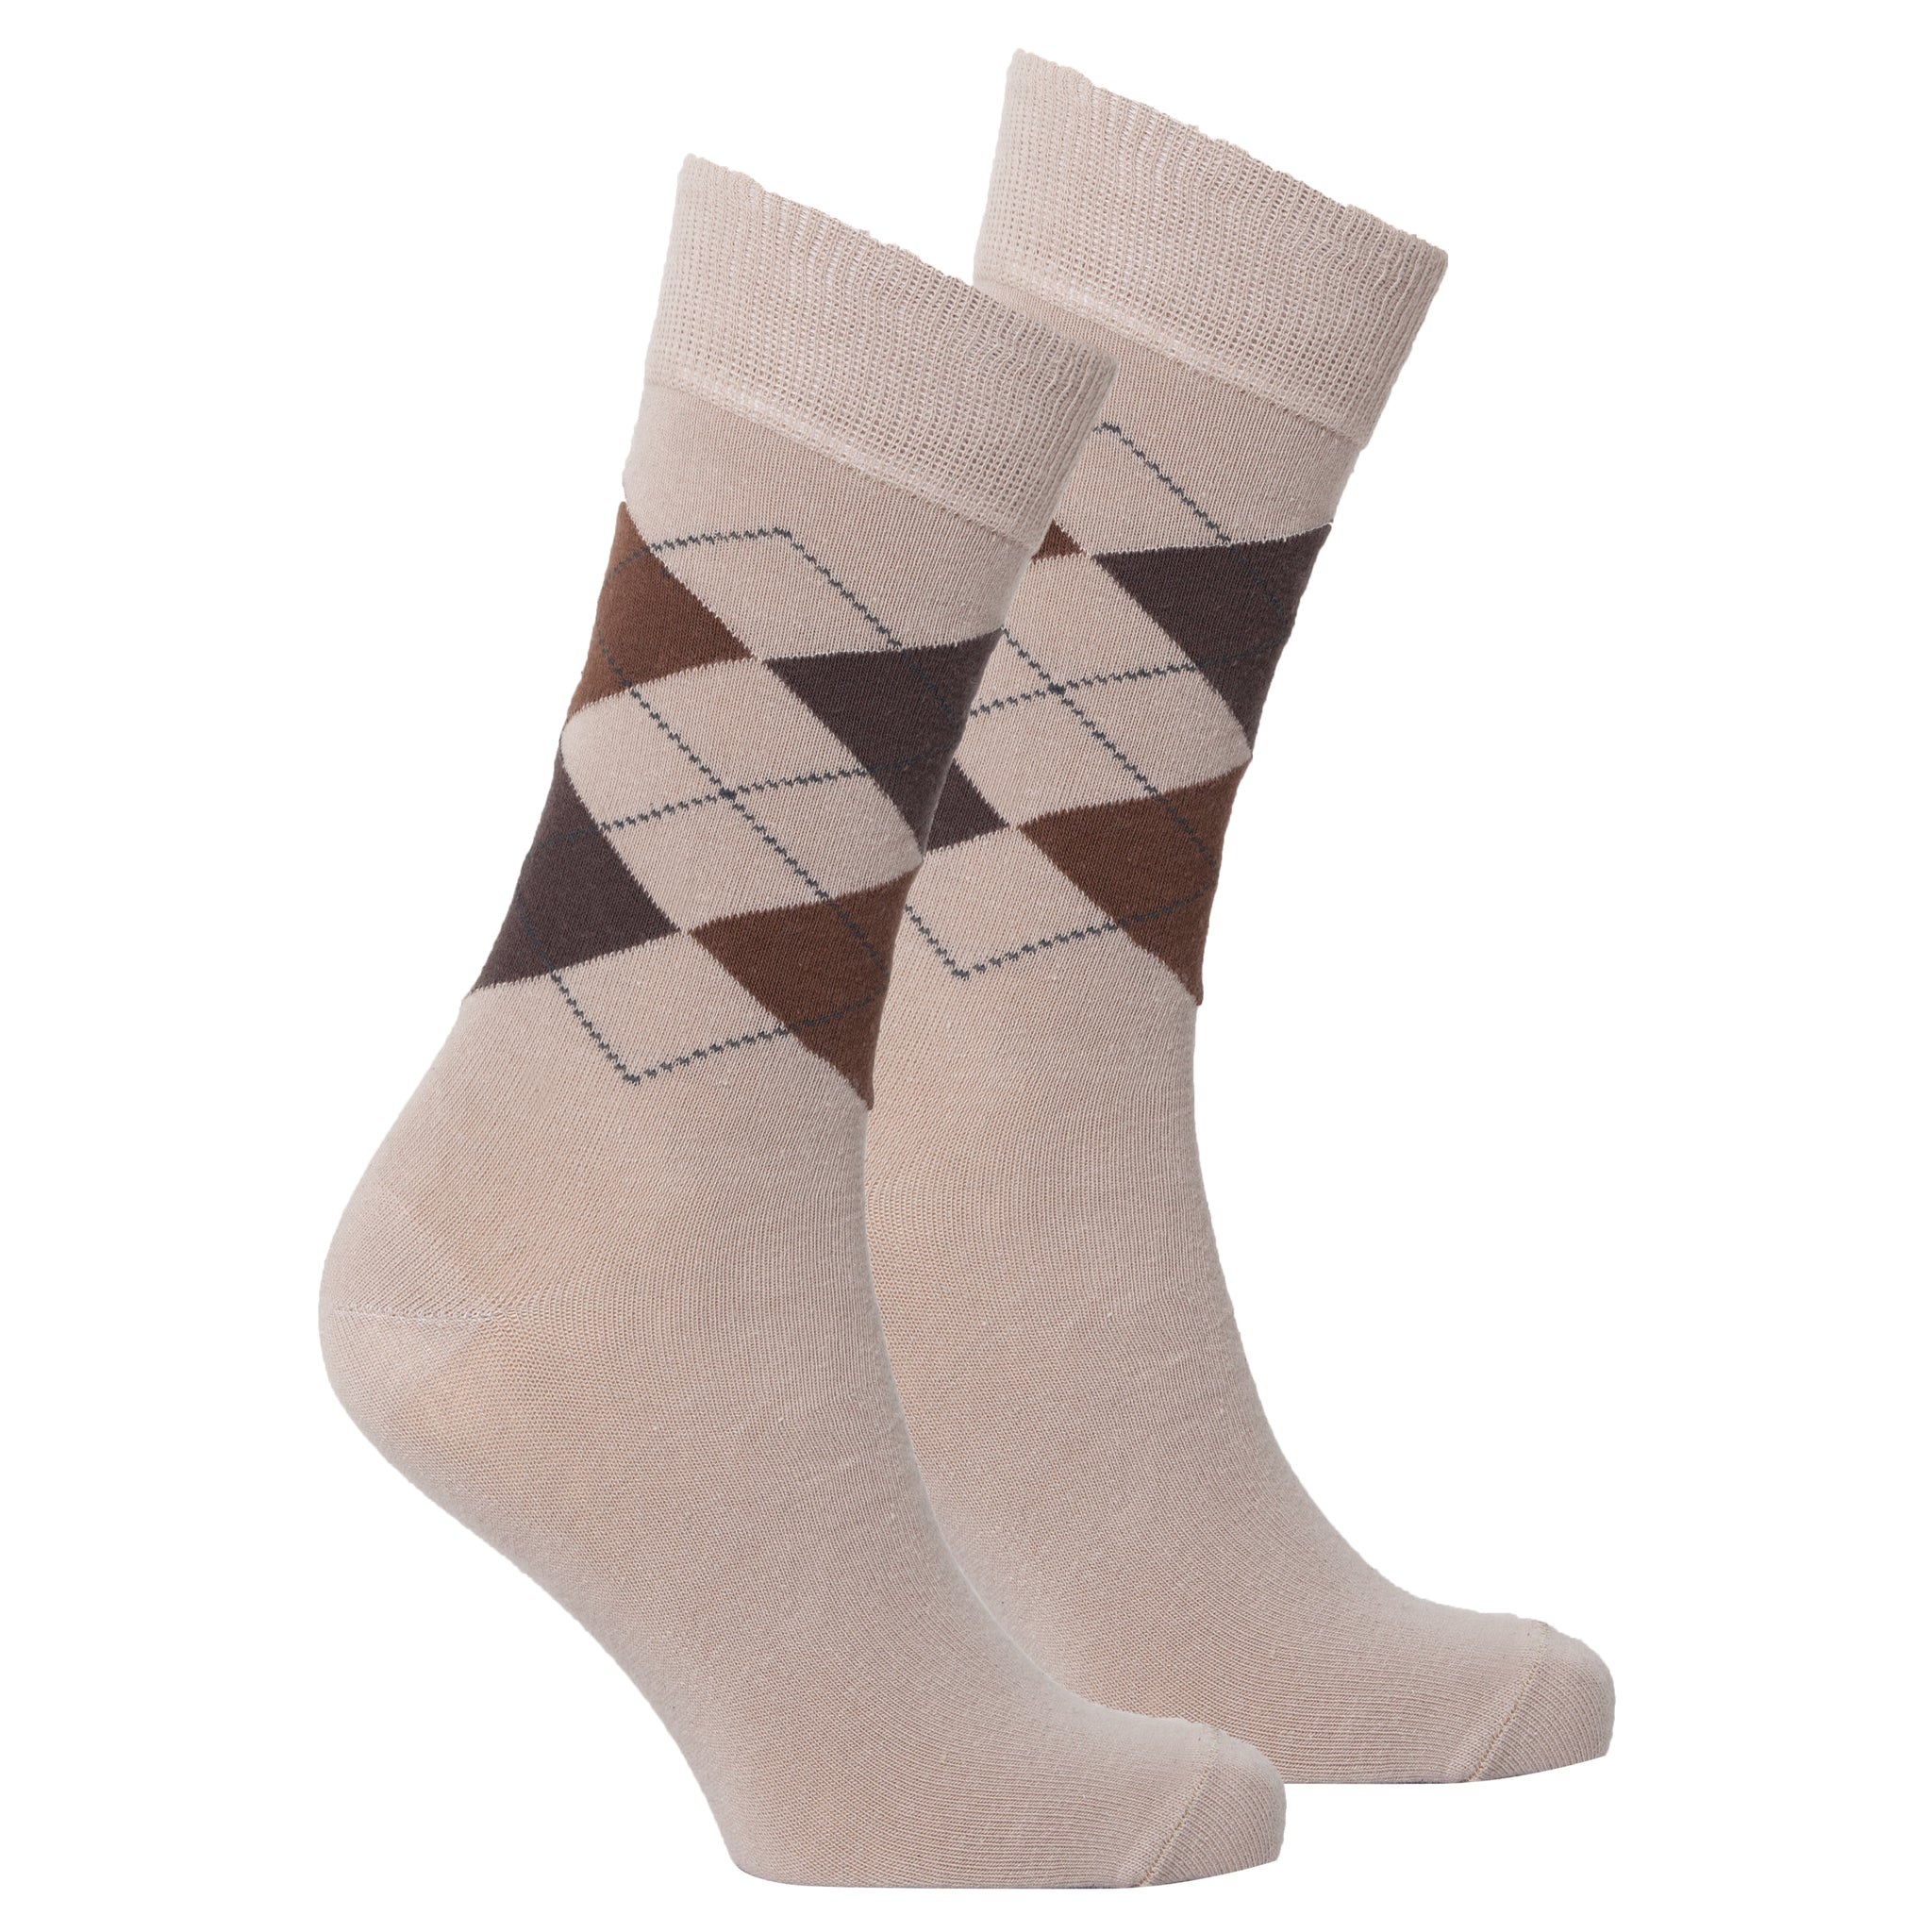 Men's Beige Argyle Socks